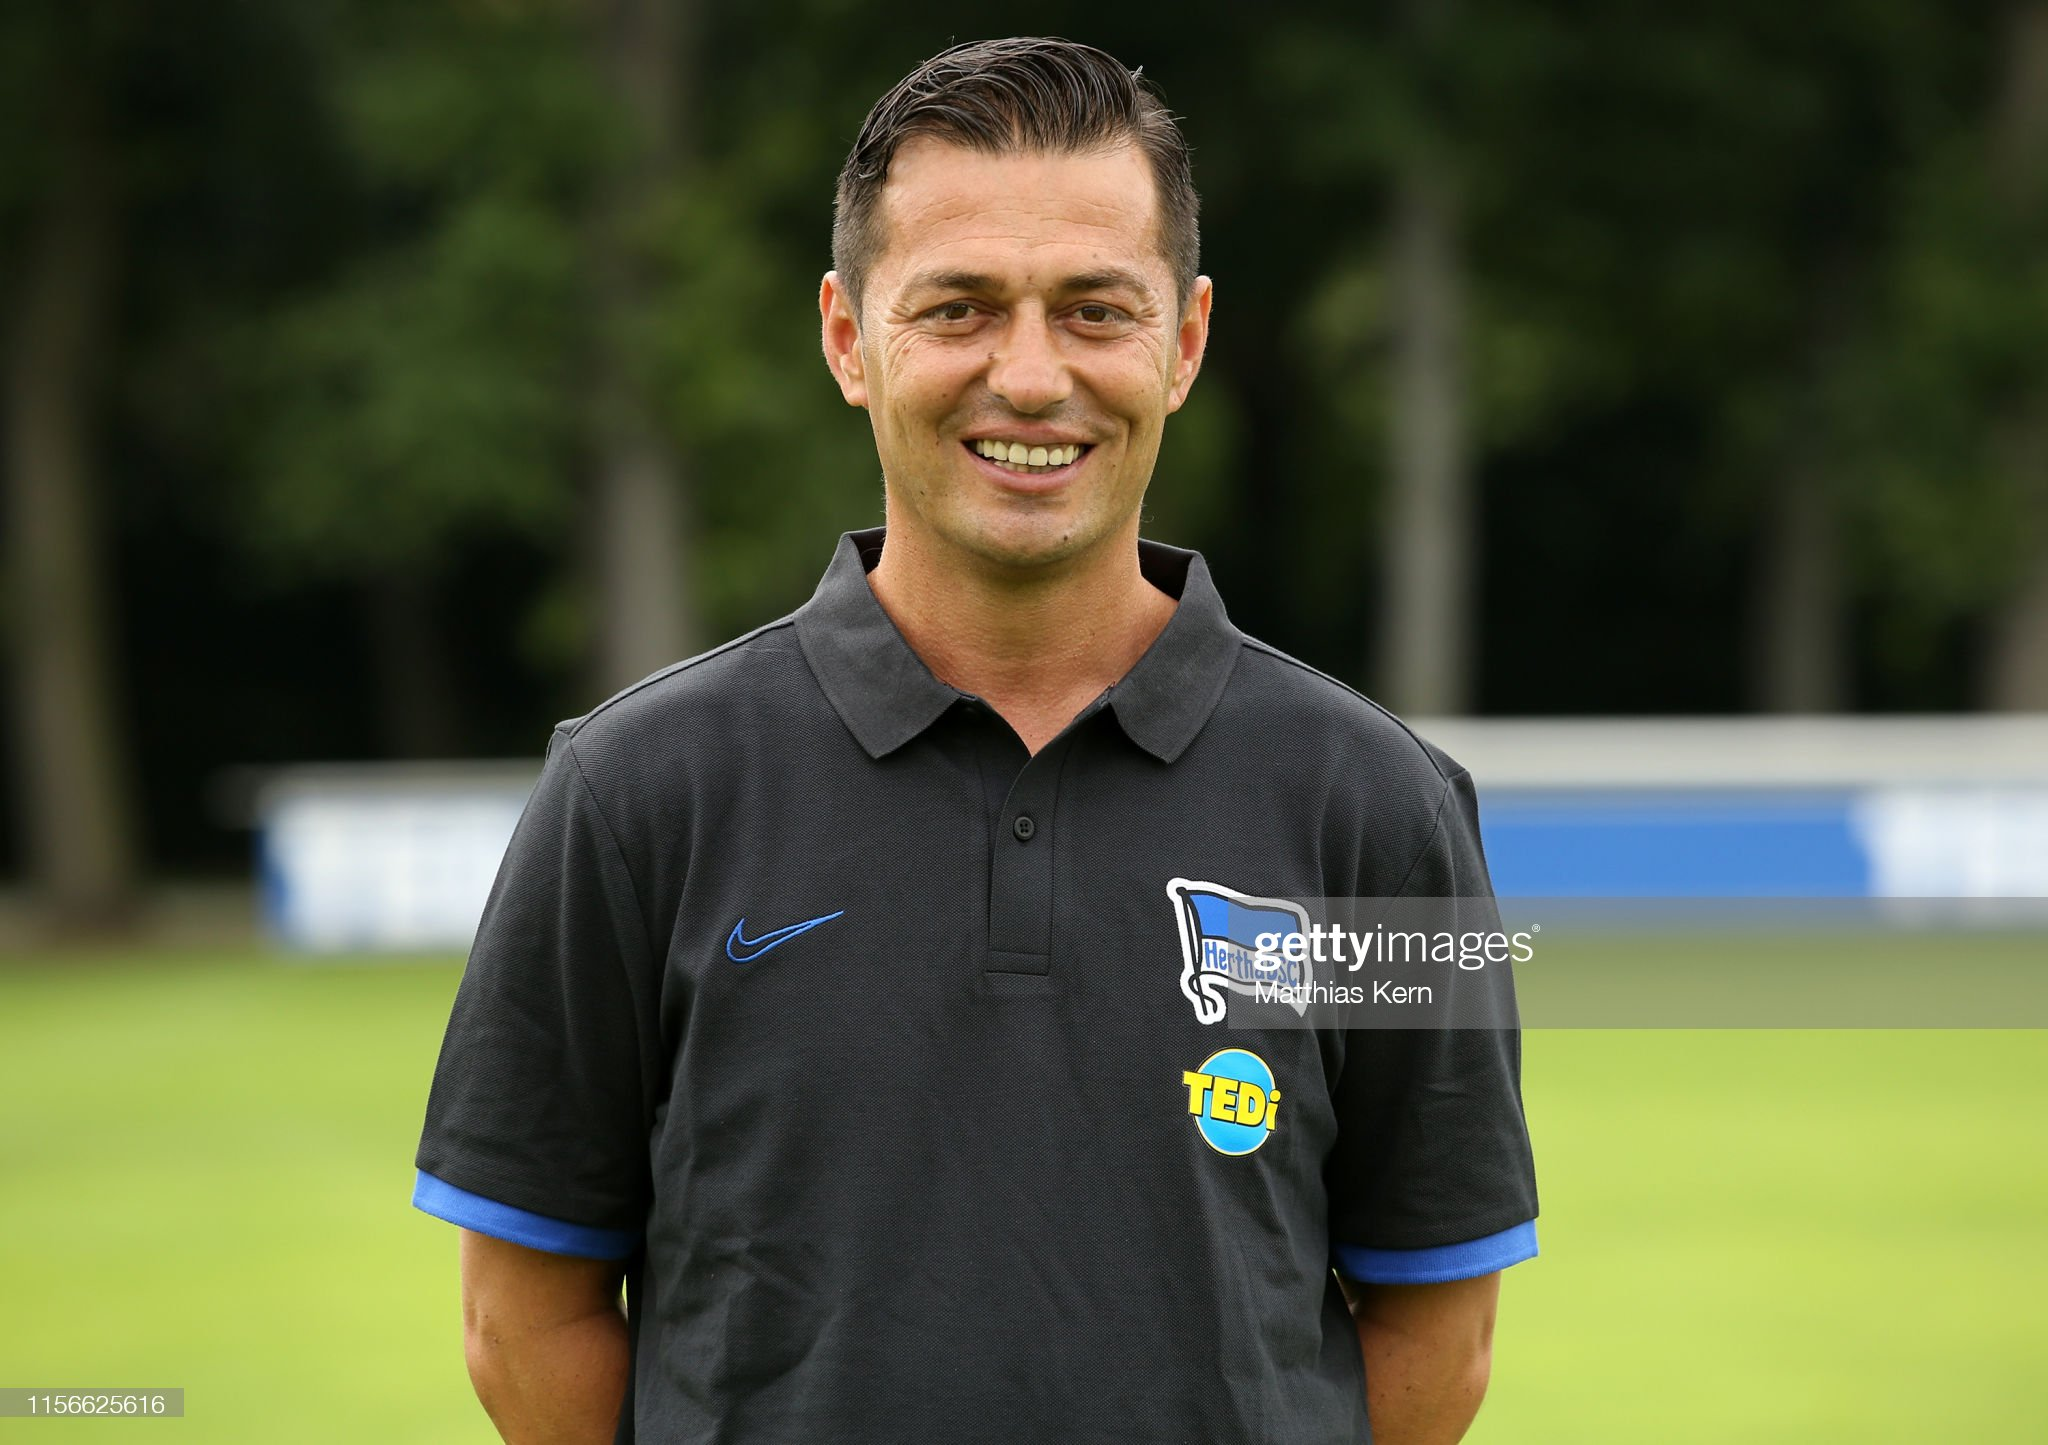 https://media.gettyimages.com/photos/head-coach-ante-covic-of-hertha-bsc-poses-during-the-team-at-on-19-picture-id1156625616?s=2048x2048